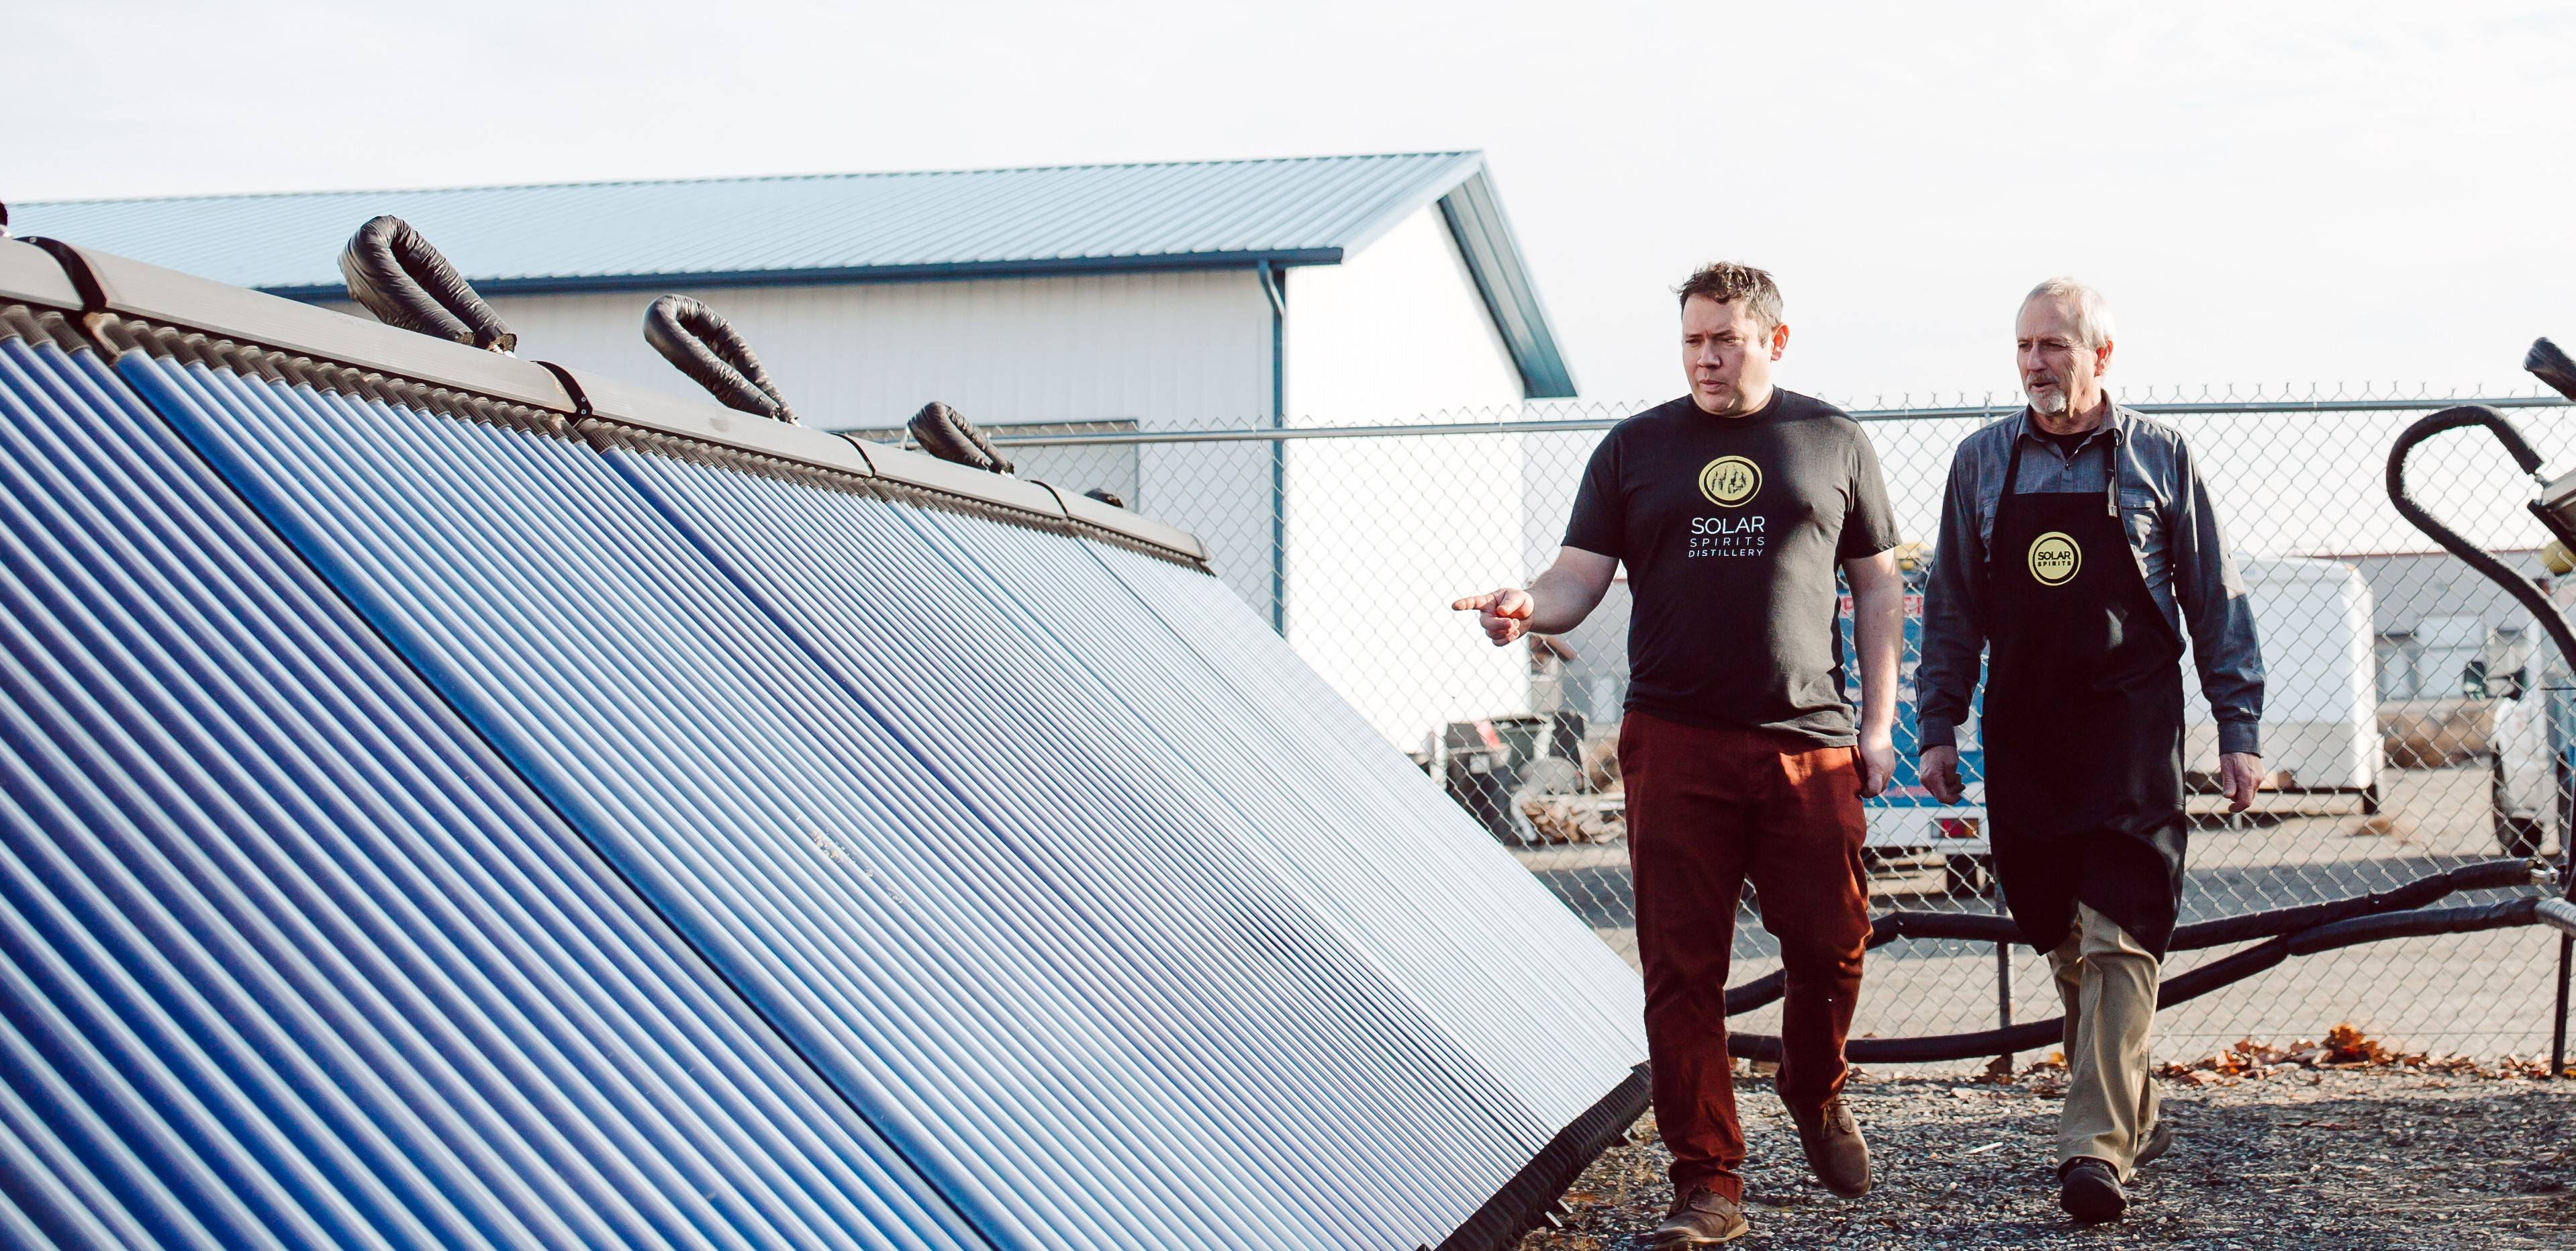 <h2>Powered by the sun</h2><p>Our mash process is powered by solar tubes. We put the power of the sun in every bottle.</p>